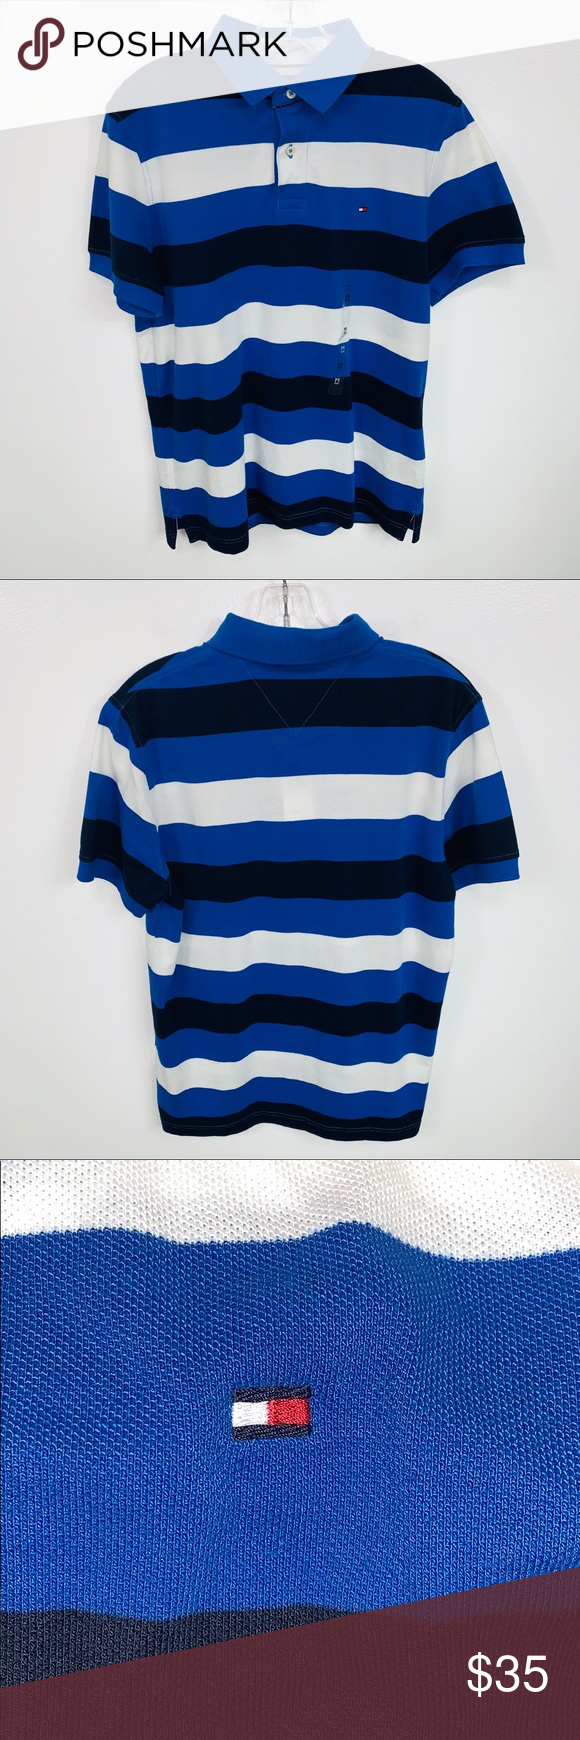 a38dd059ad NEW Mens Tommy Hilfiger Striped Polo Shirt Medium NEW With Tags Mens Tommy  Hilfiger Navy Blue Blue White Striped Short Sleeve Polo Shirt Size Medium  Tommy ...